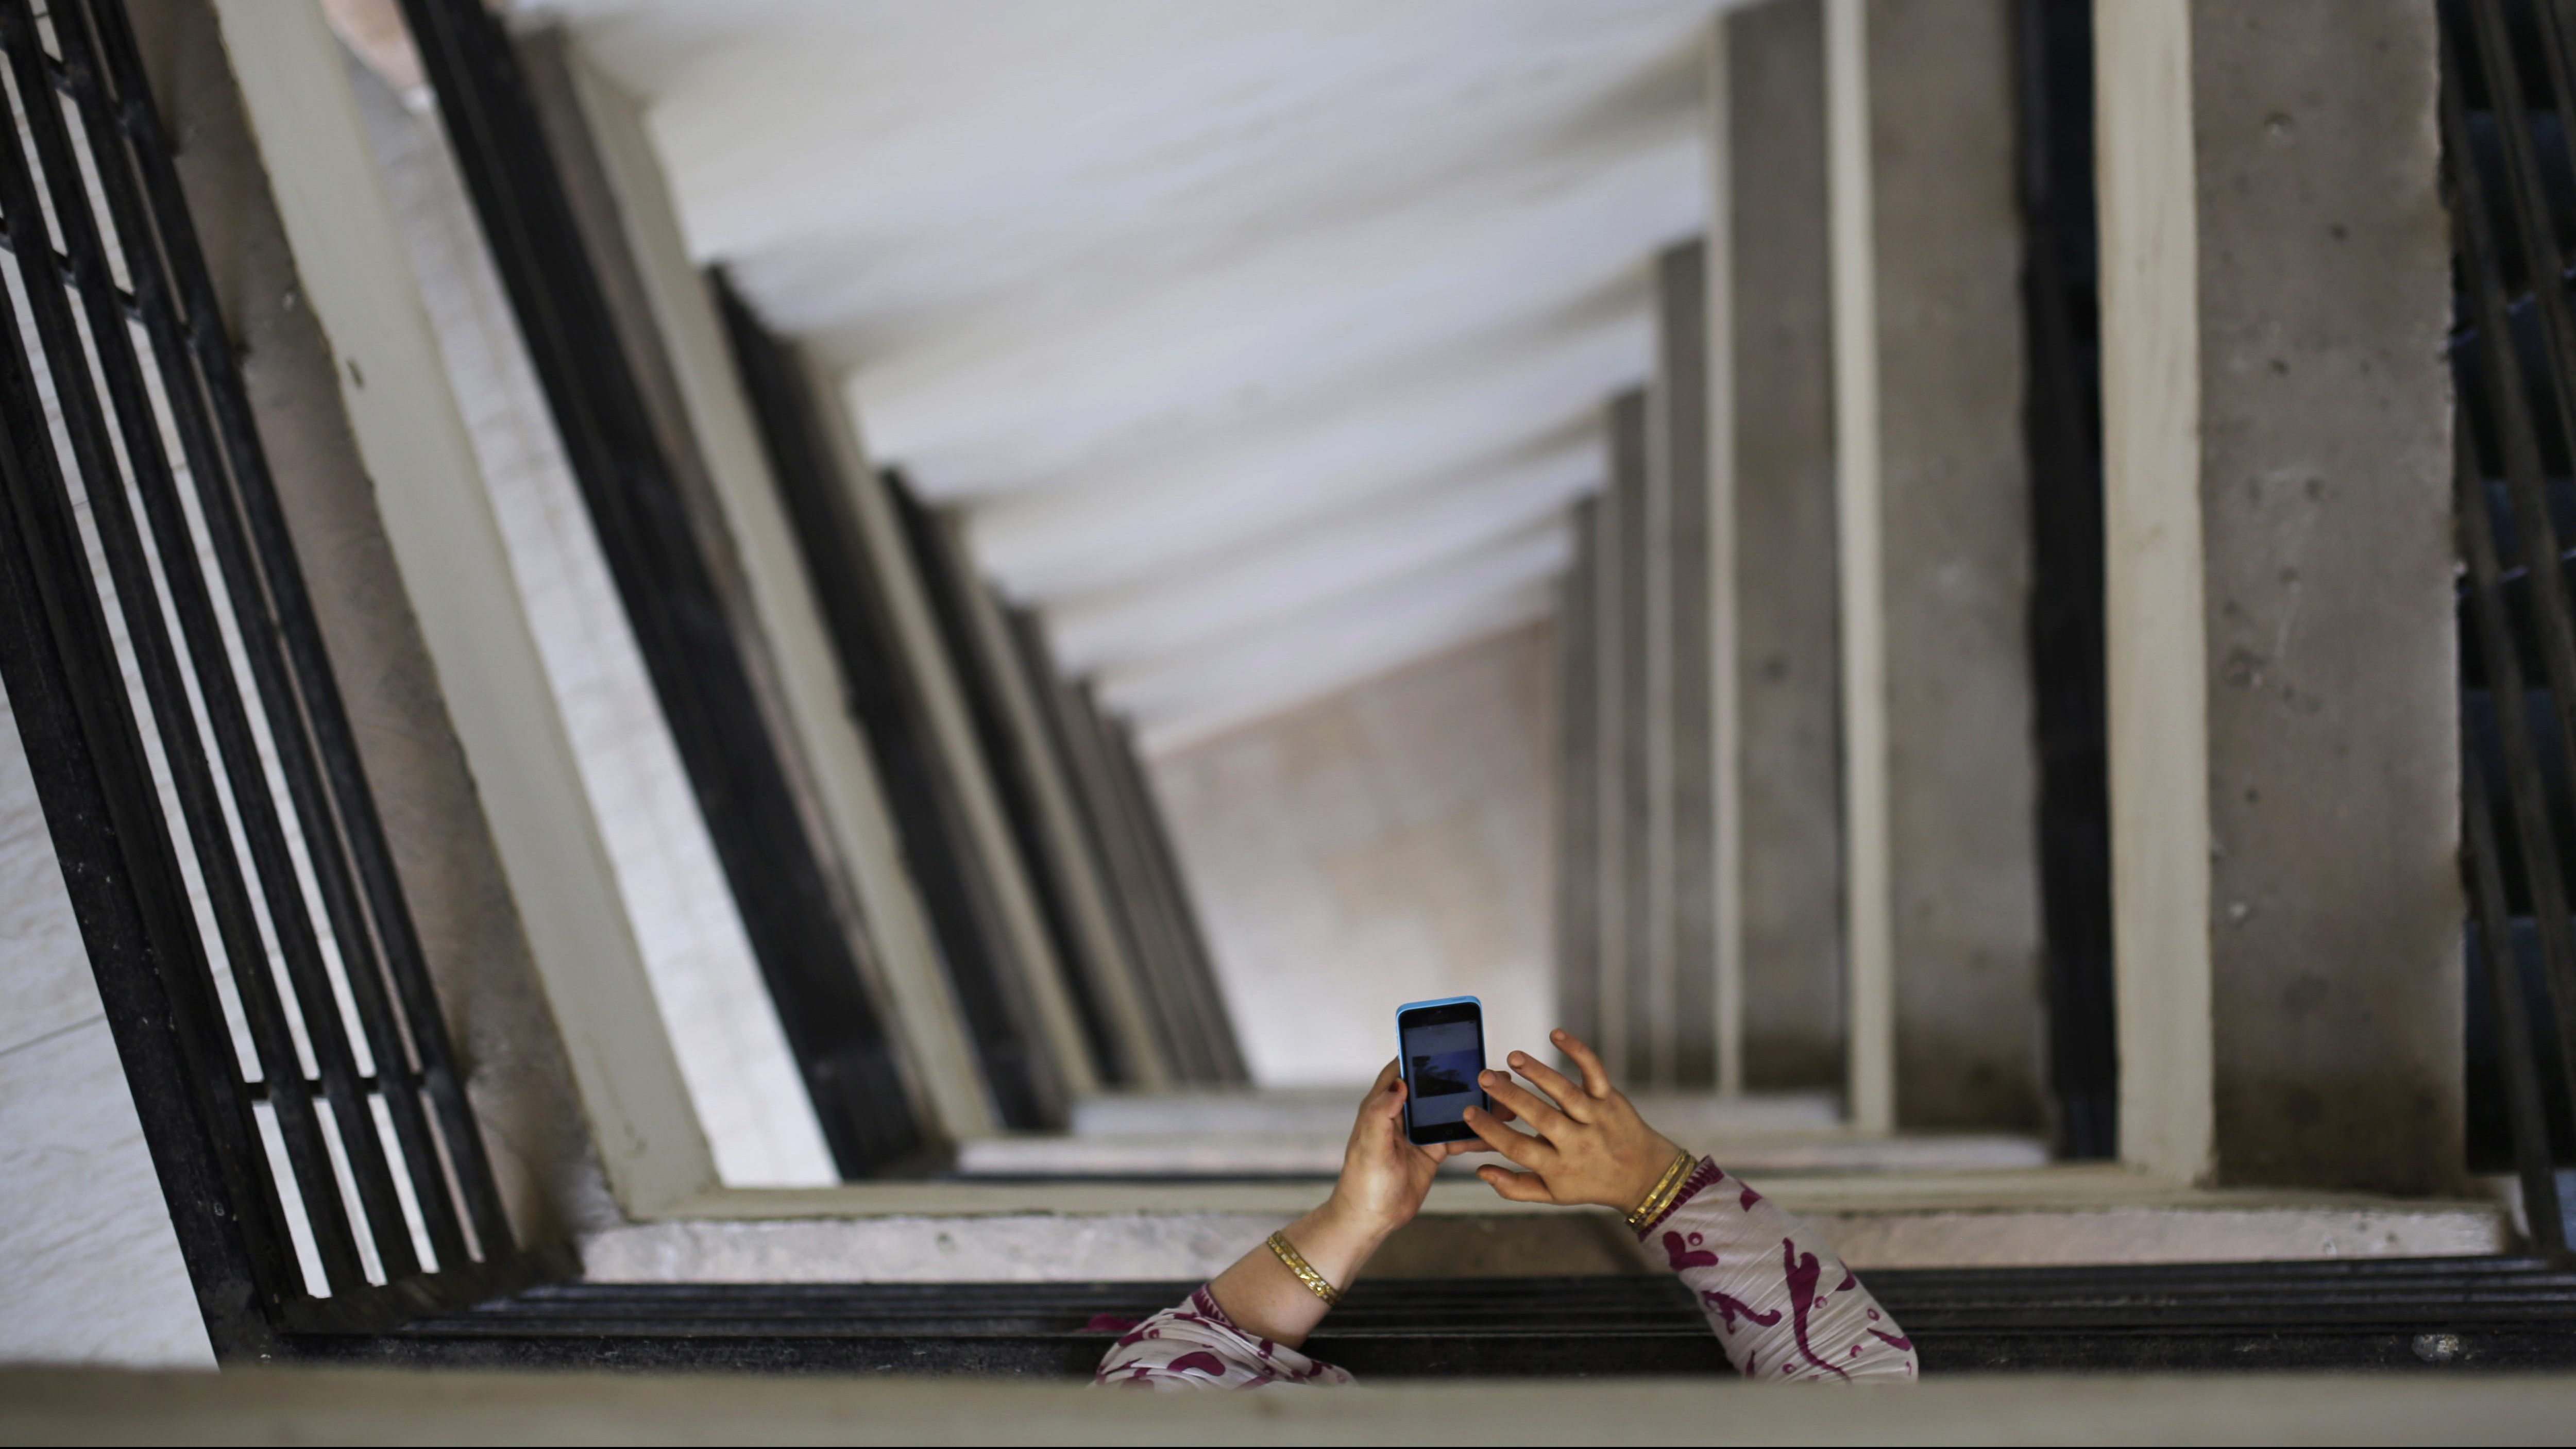 "An Indian woman leans on metal railings as she surfs the internet on her smartphone at a hospital in New Delhi, India, Tuesday, March 24, 2015. India's top court reaffirmed people's right to free speech in cyberspace Tuesday by striking down a provision that had called for imprisoning people who send ""offensive"" messages by computer or mobile phone. The provision, known as Section 66A of the 2008 Information Technology Act, says sending such messages is a crime punishable by up to three years in prison. (AP Photo/Altaf Qadri)"